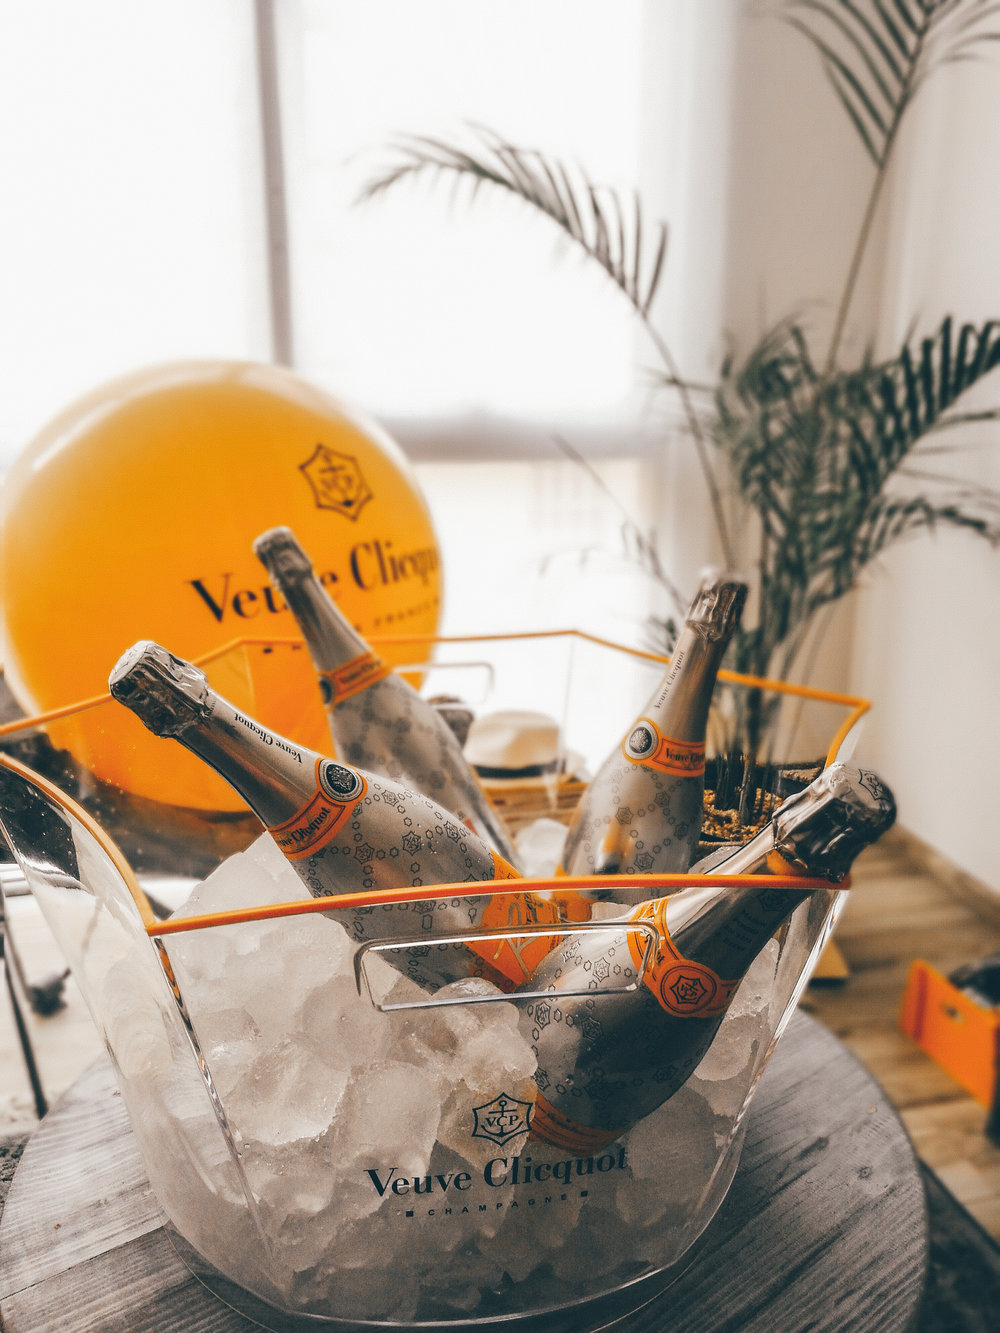 VEUVE-CLICQUOT-RICH-HOW-TO-DRINK